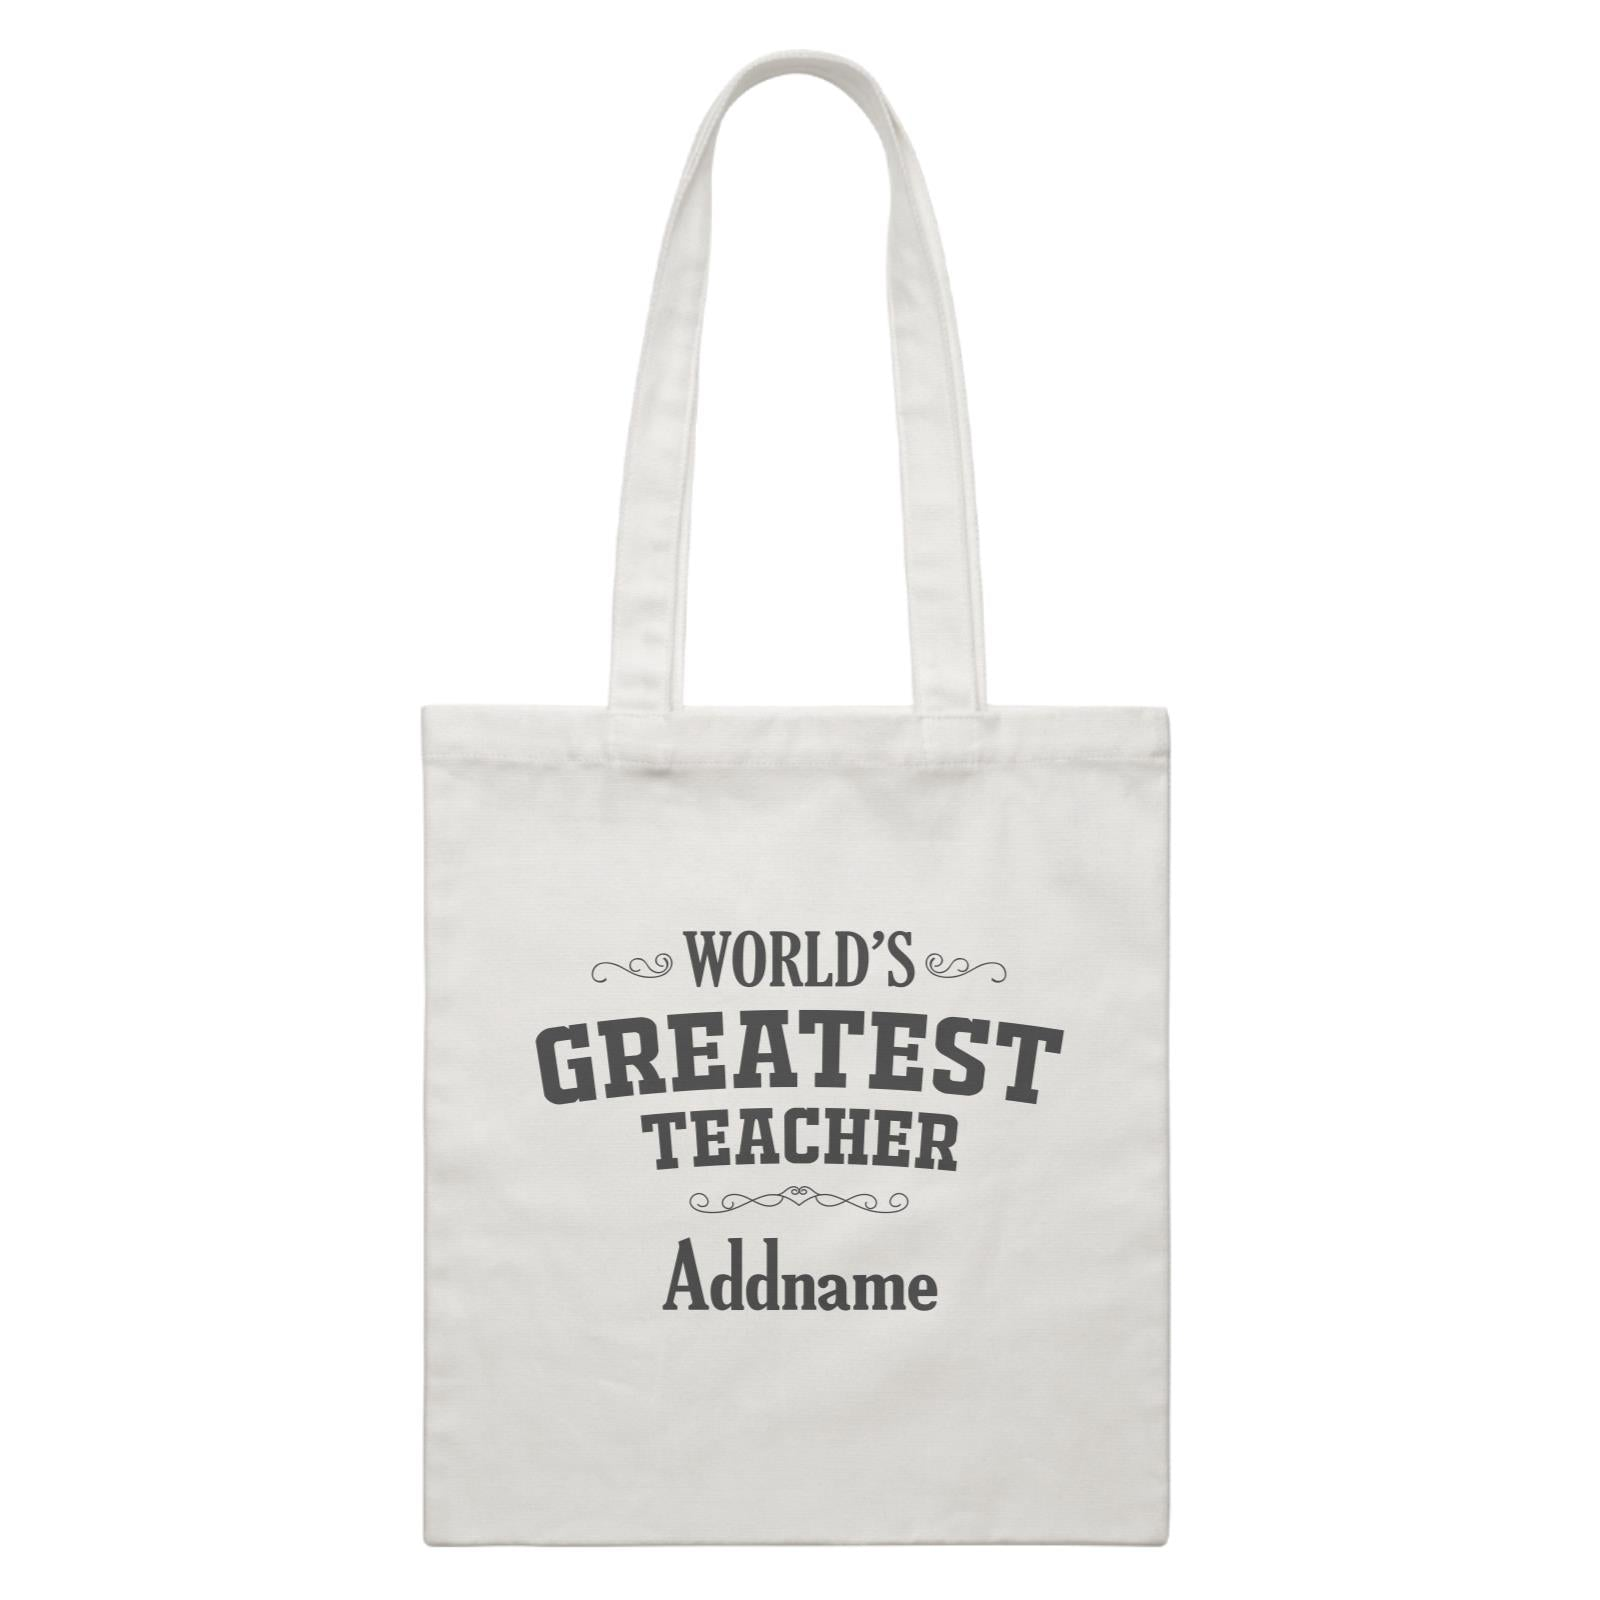 Great Teachers World's Greatest Teacher Addname White Canvas Bag